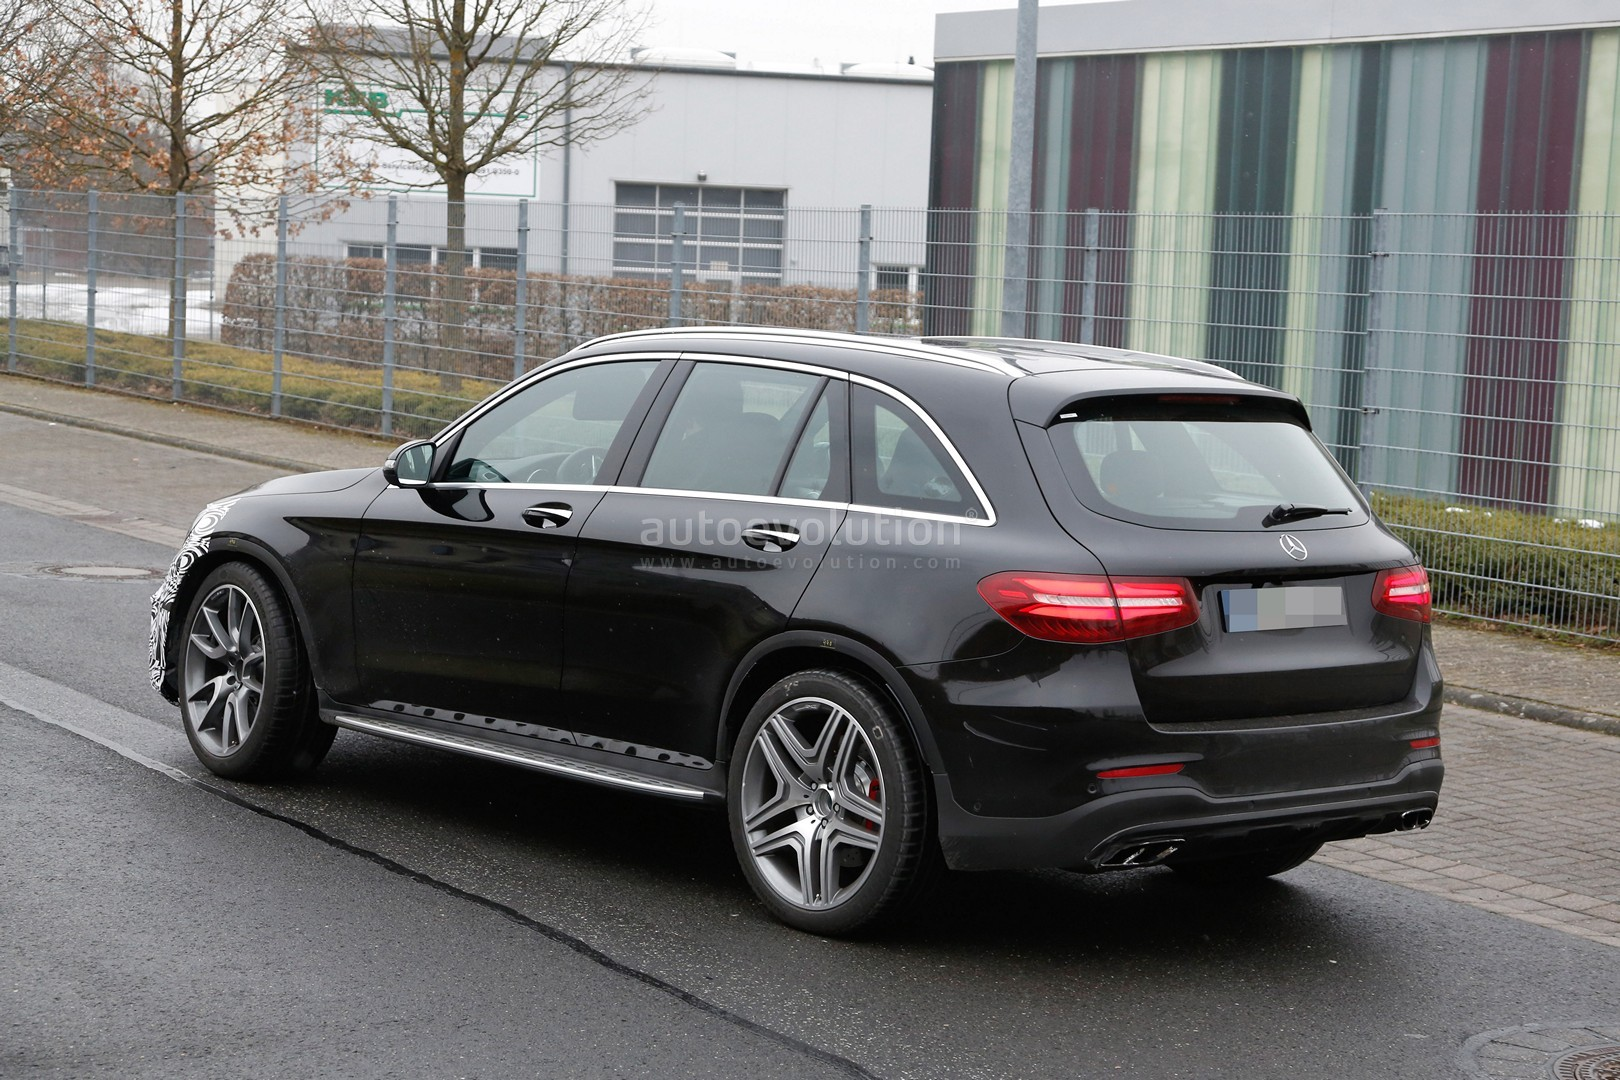 mercedes amg glc 63 test prototype seen for the first time. Black Bedroom Furniture Sets. Home Design Ideas